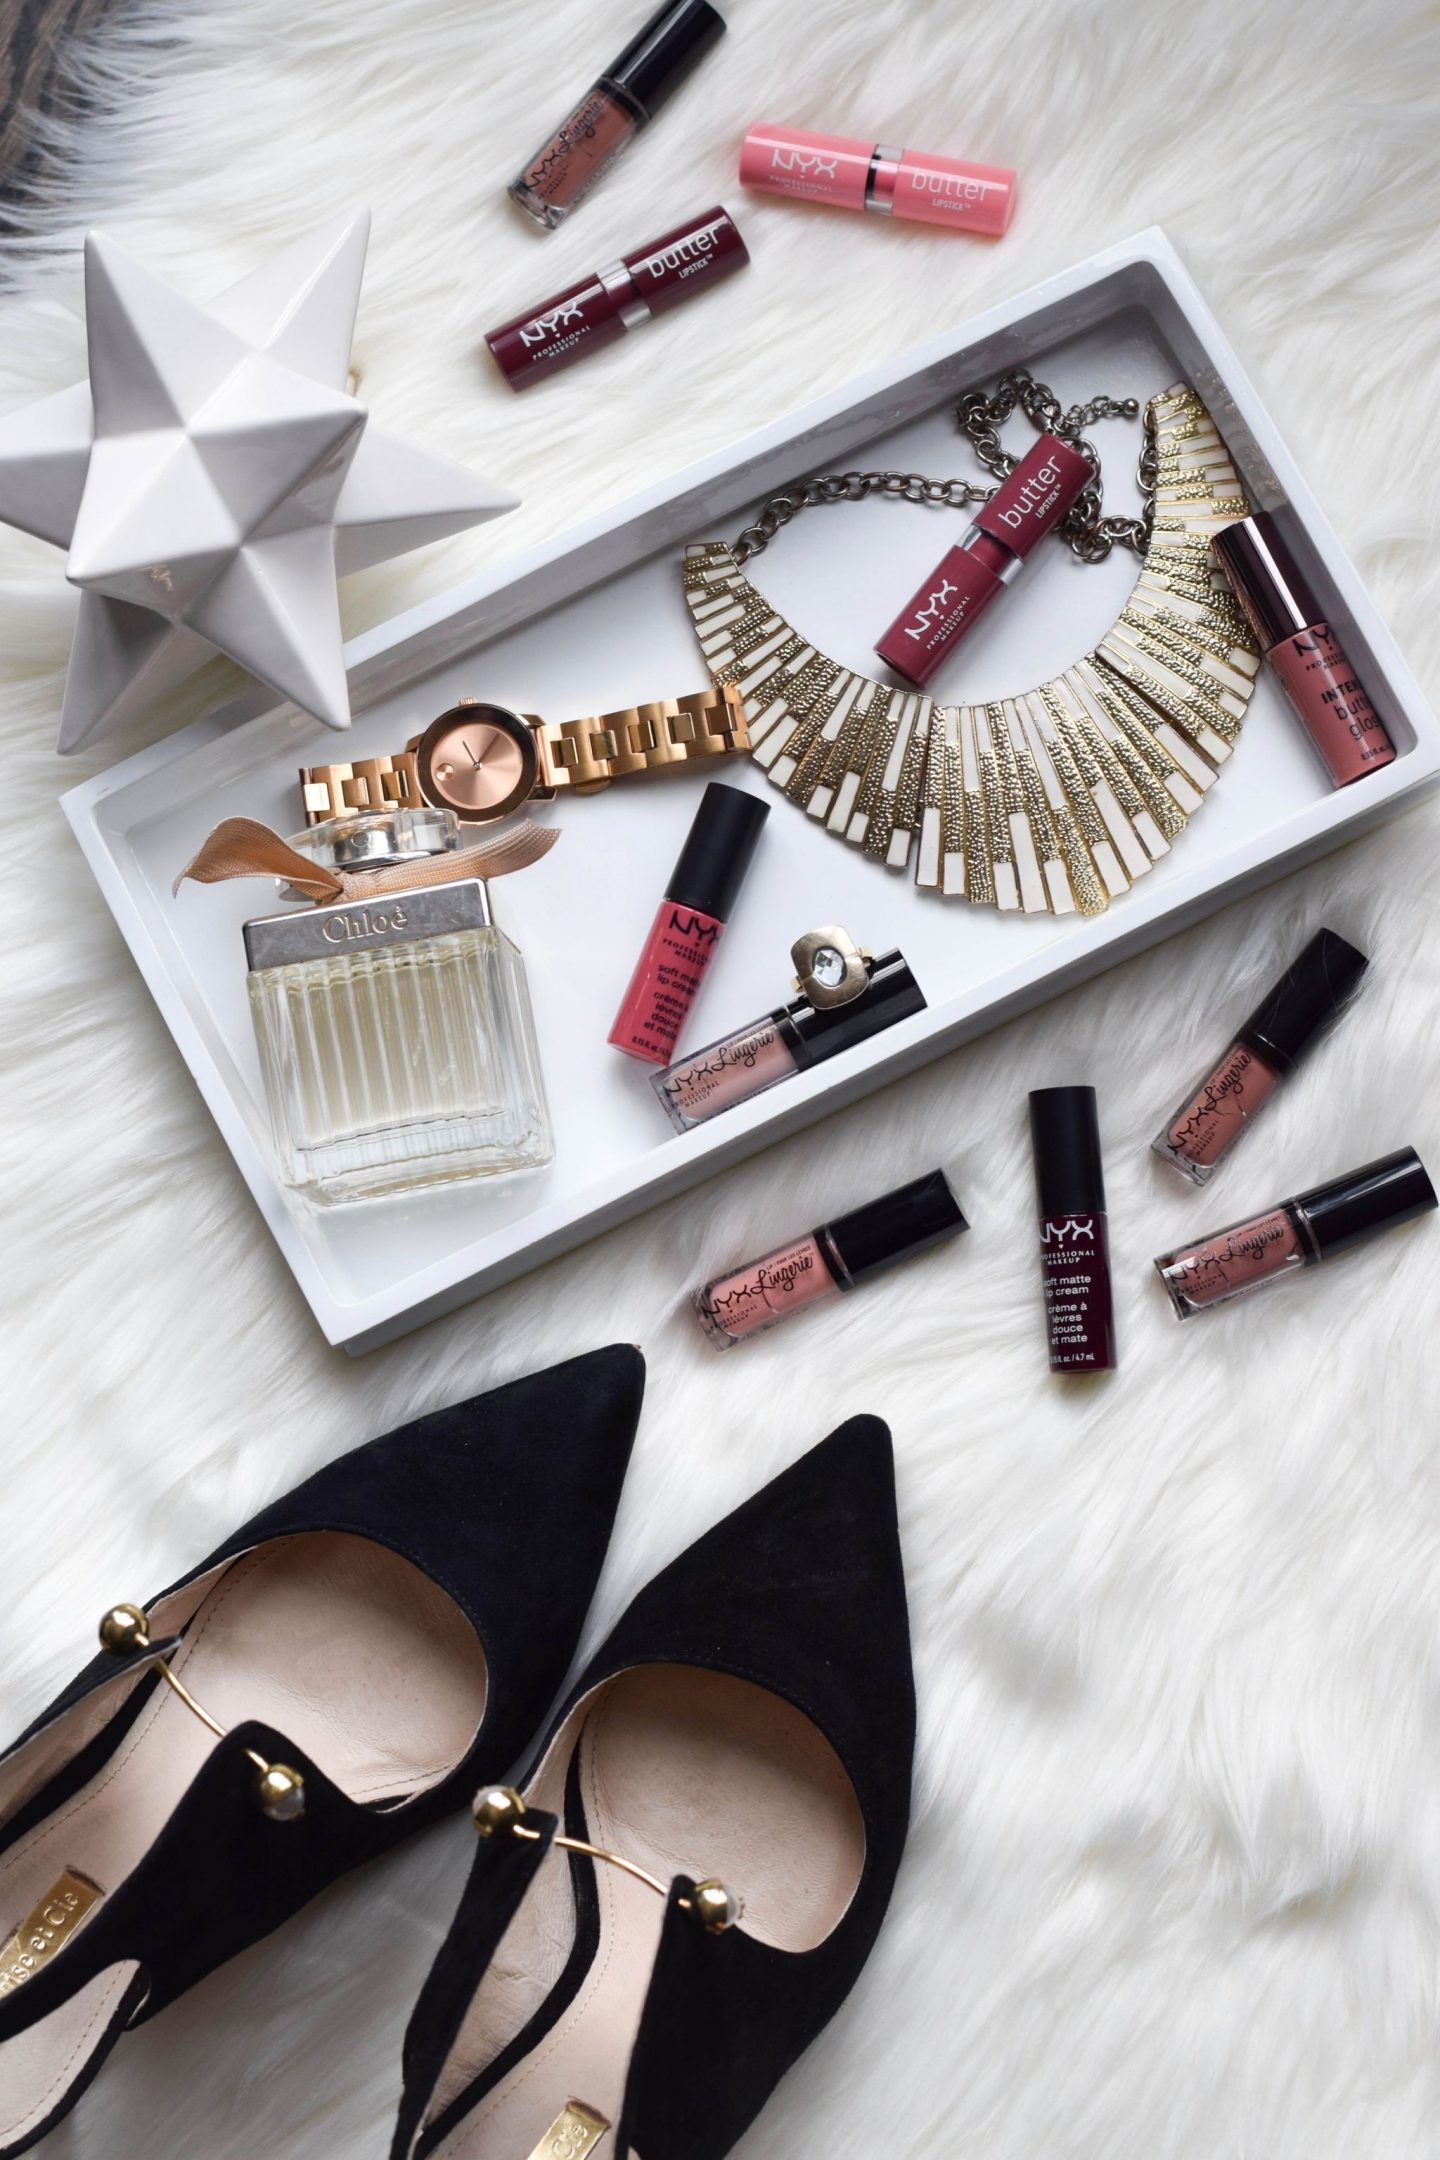 Beauty: The Perfect Lippies To Wear This Holiday Season!